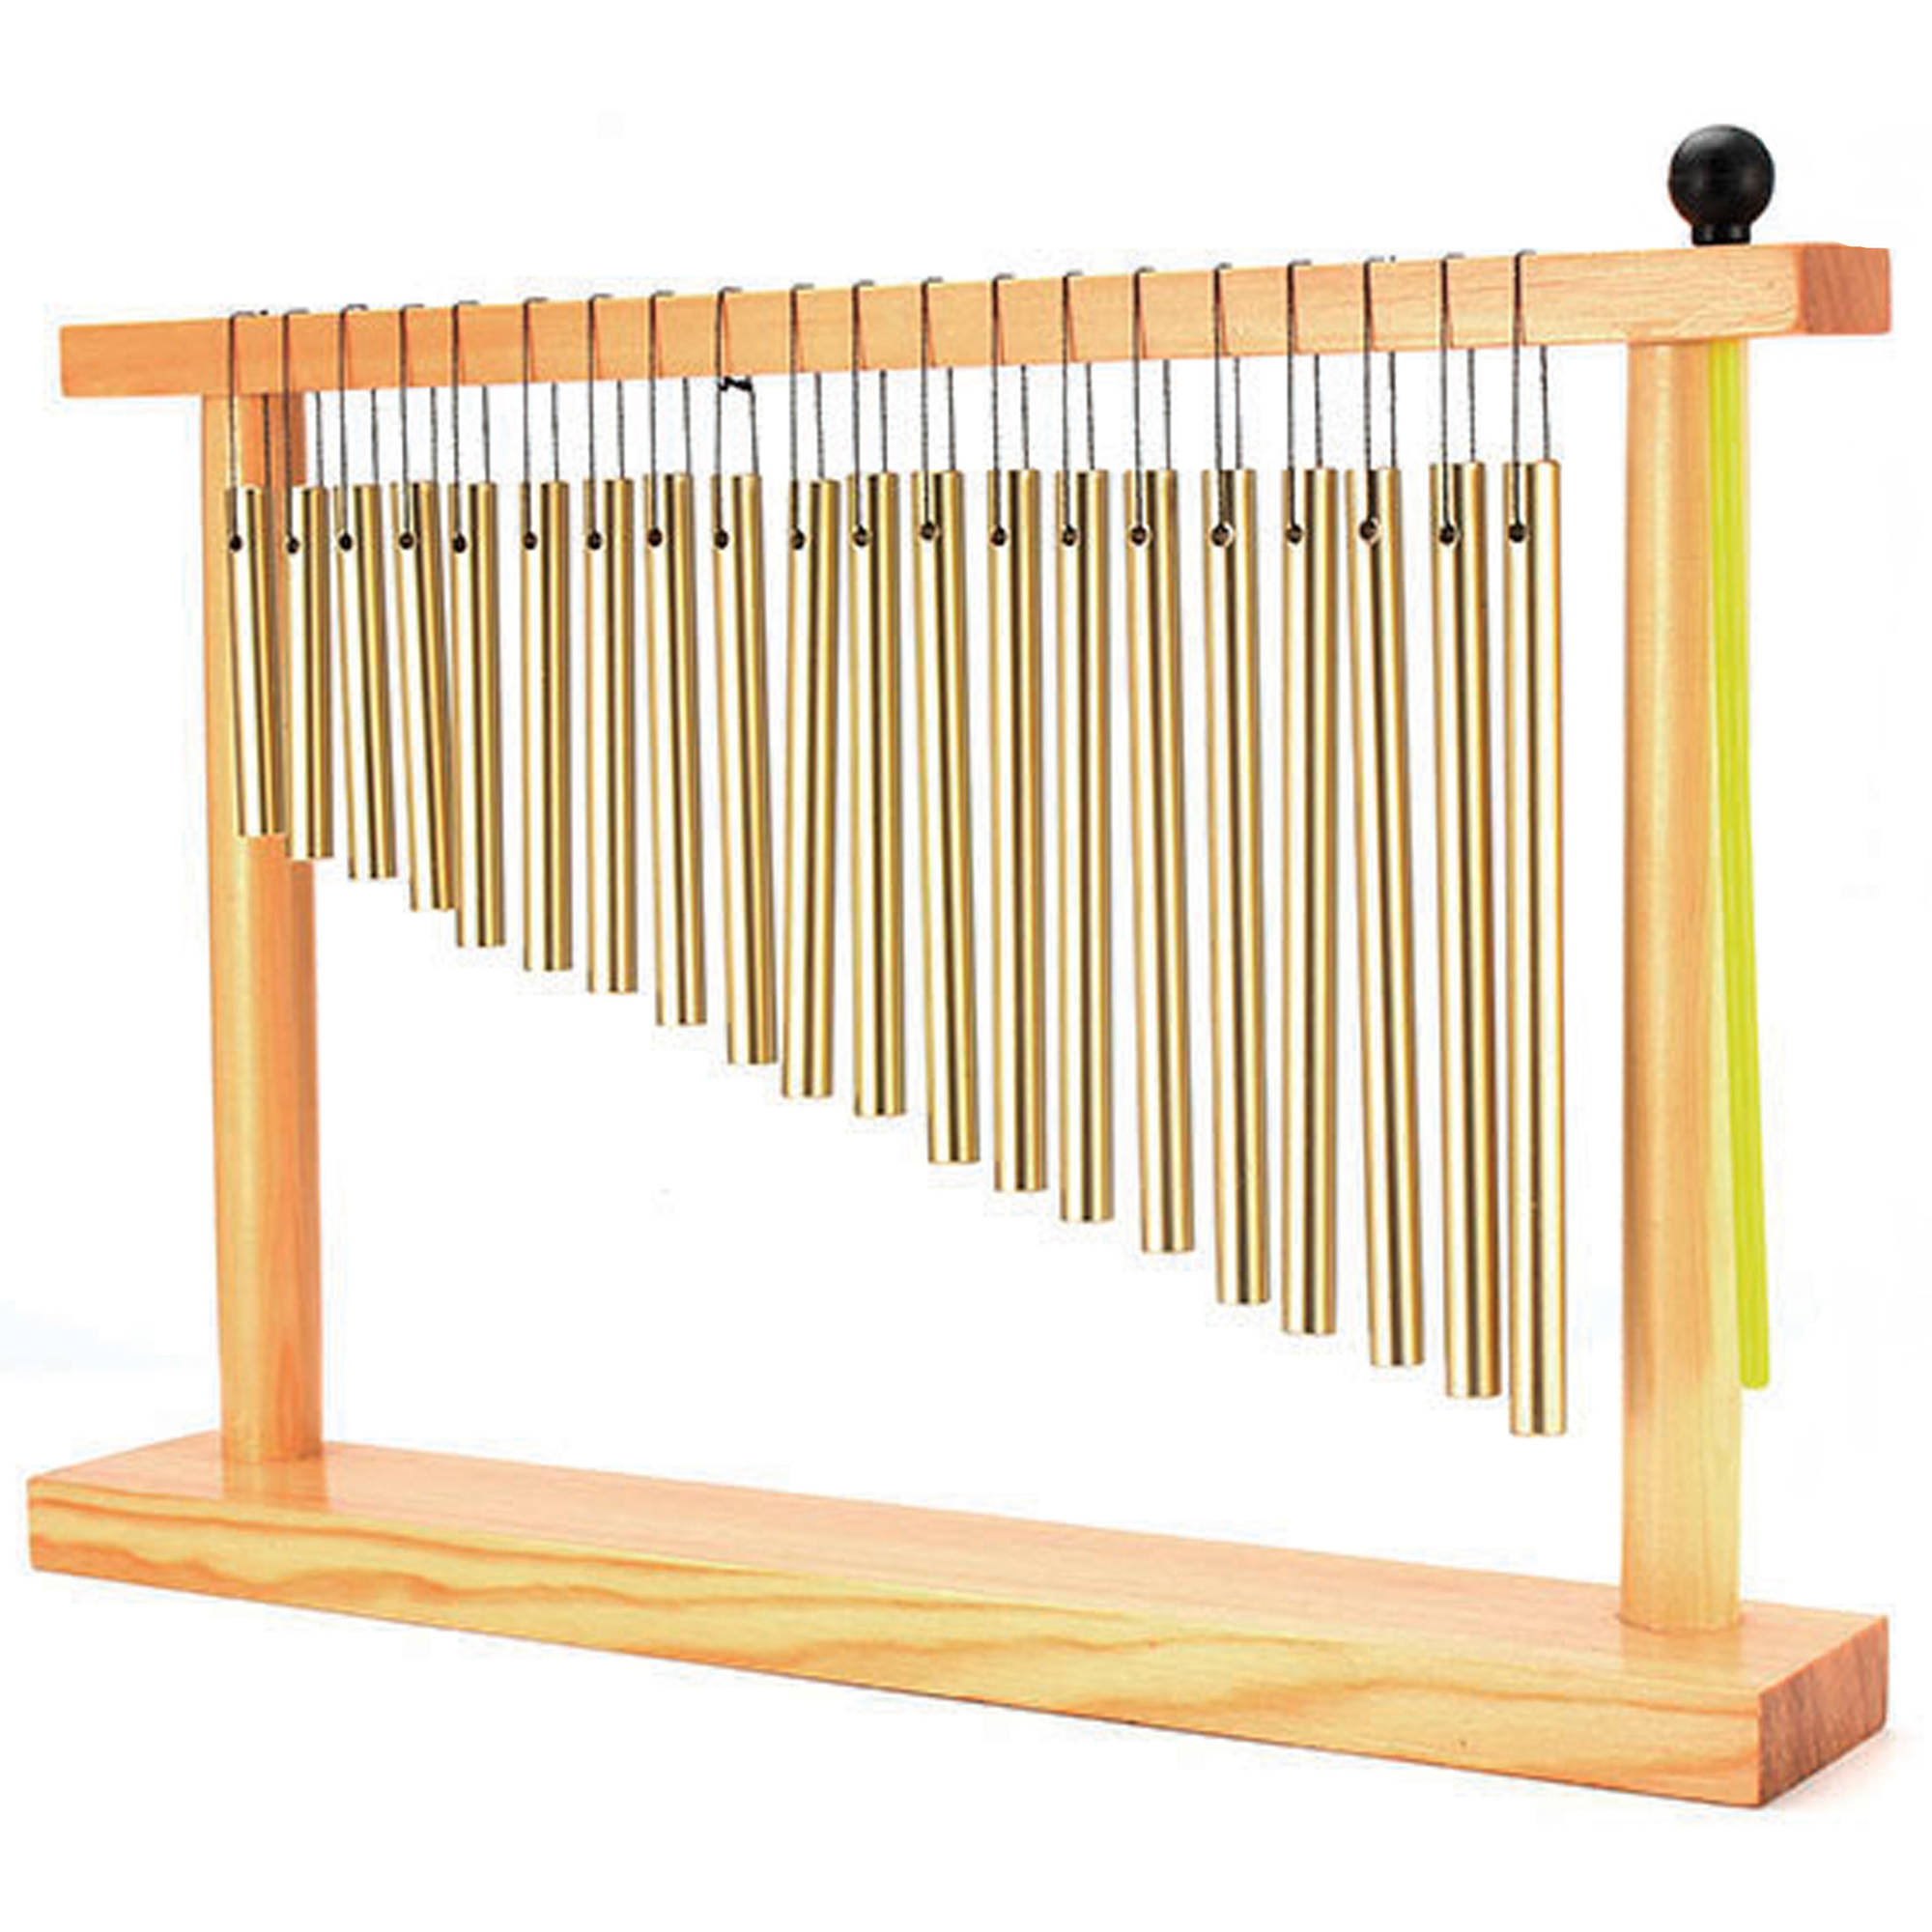 GP Percussion GPCM20 Bar Chime Table Set